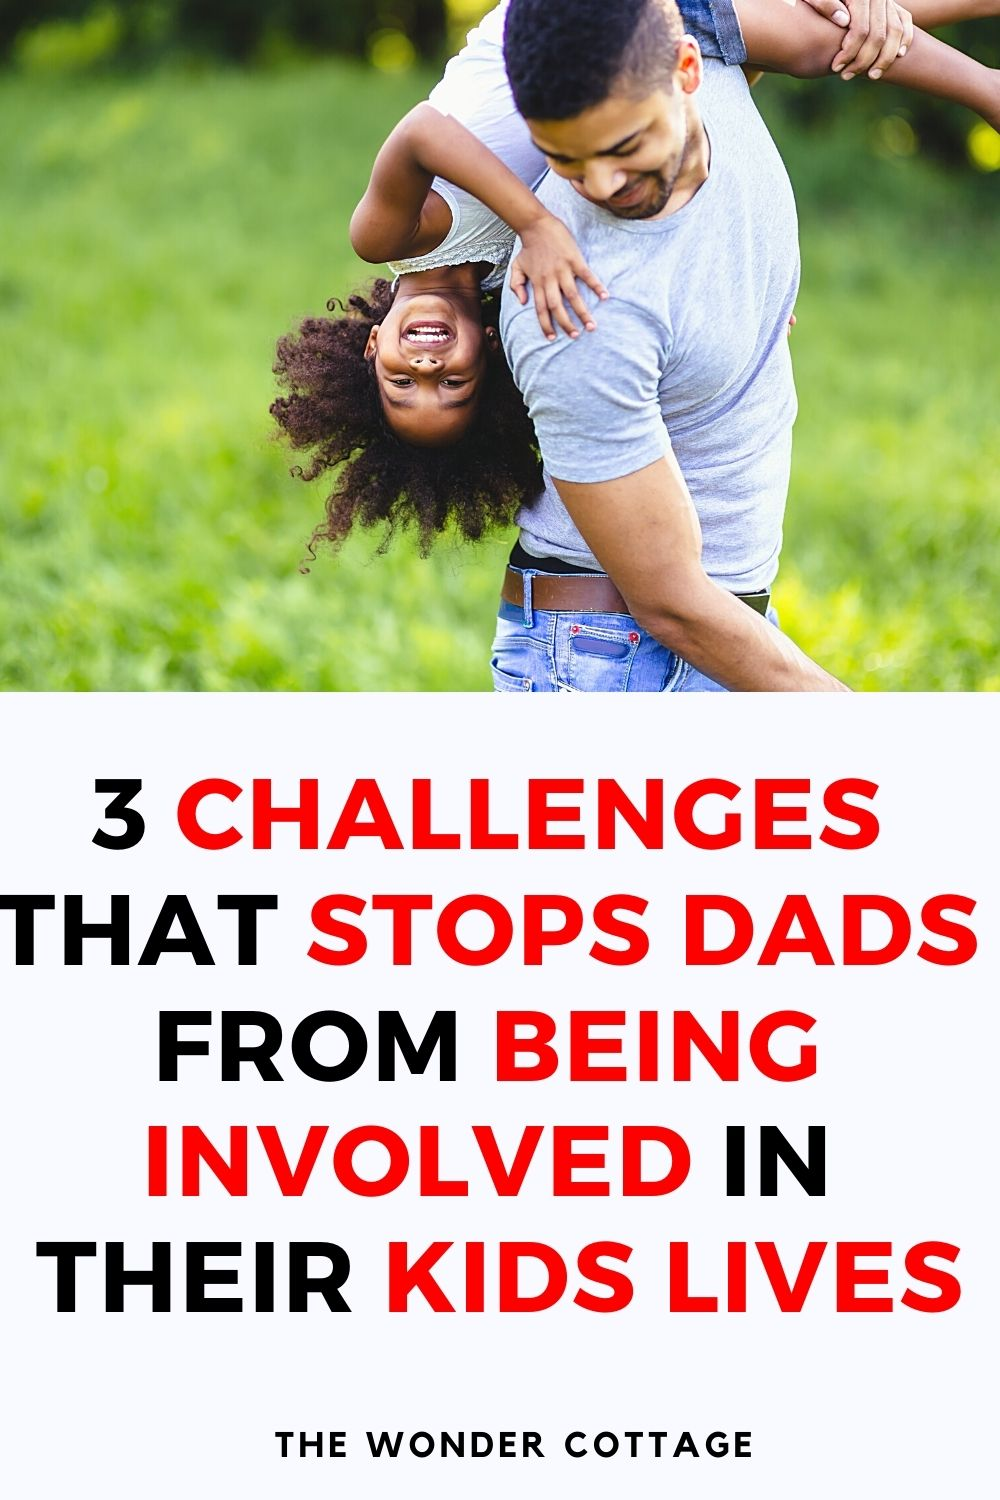 3 challenges that stops dads from being involved in their kids lives